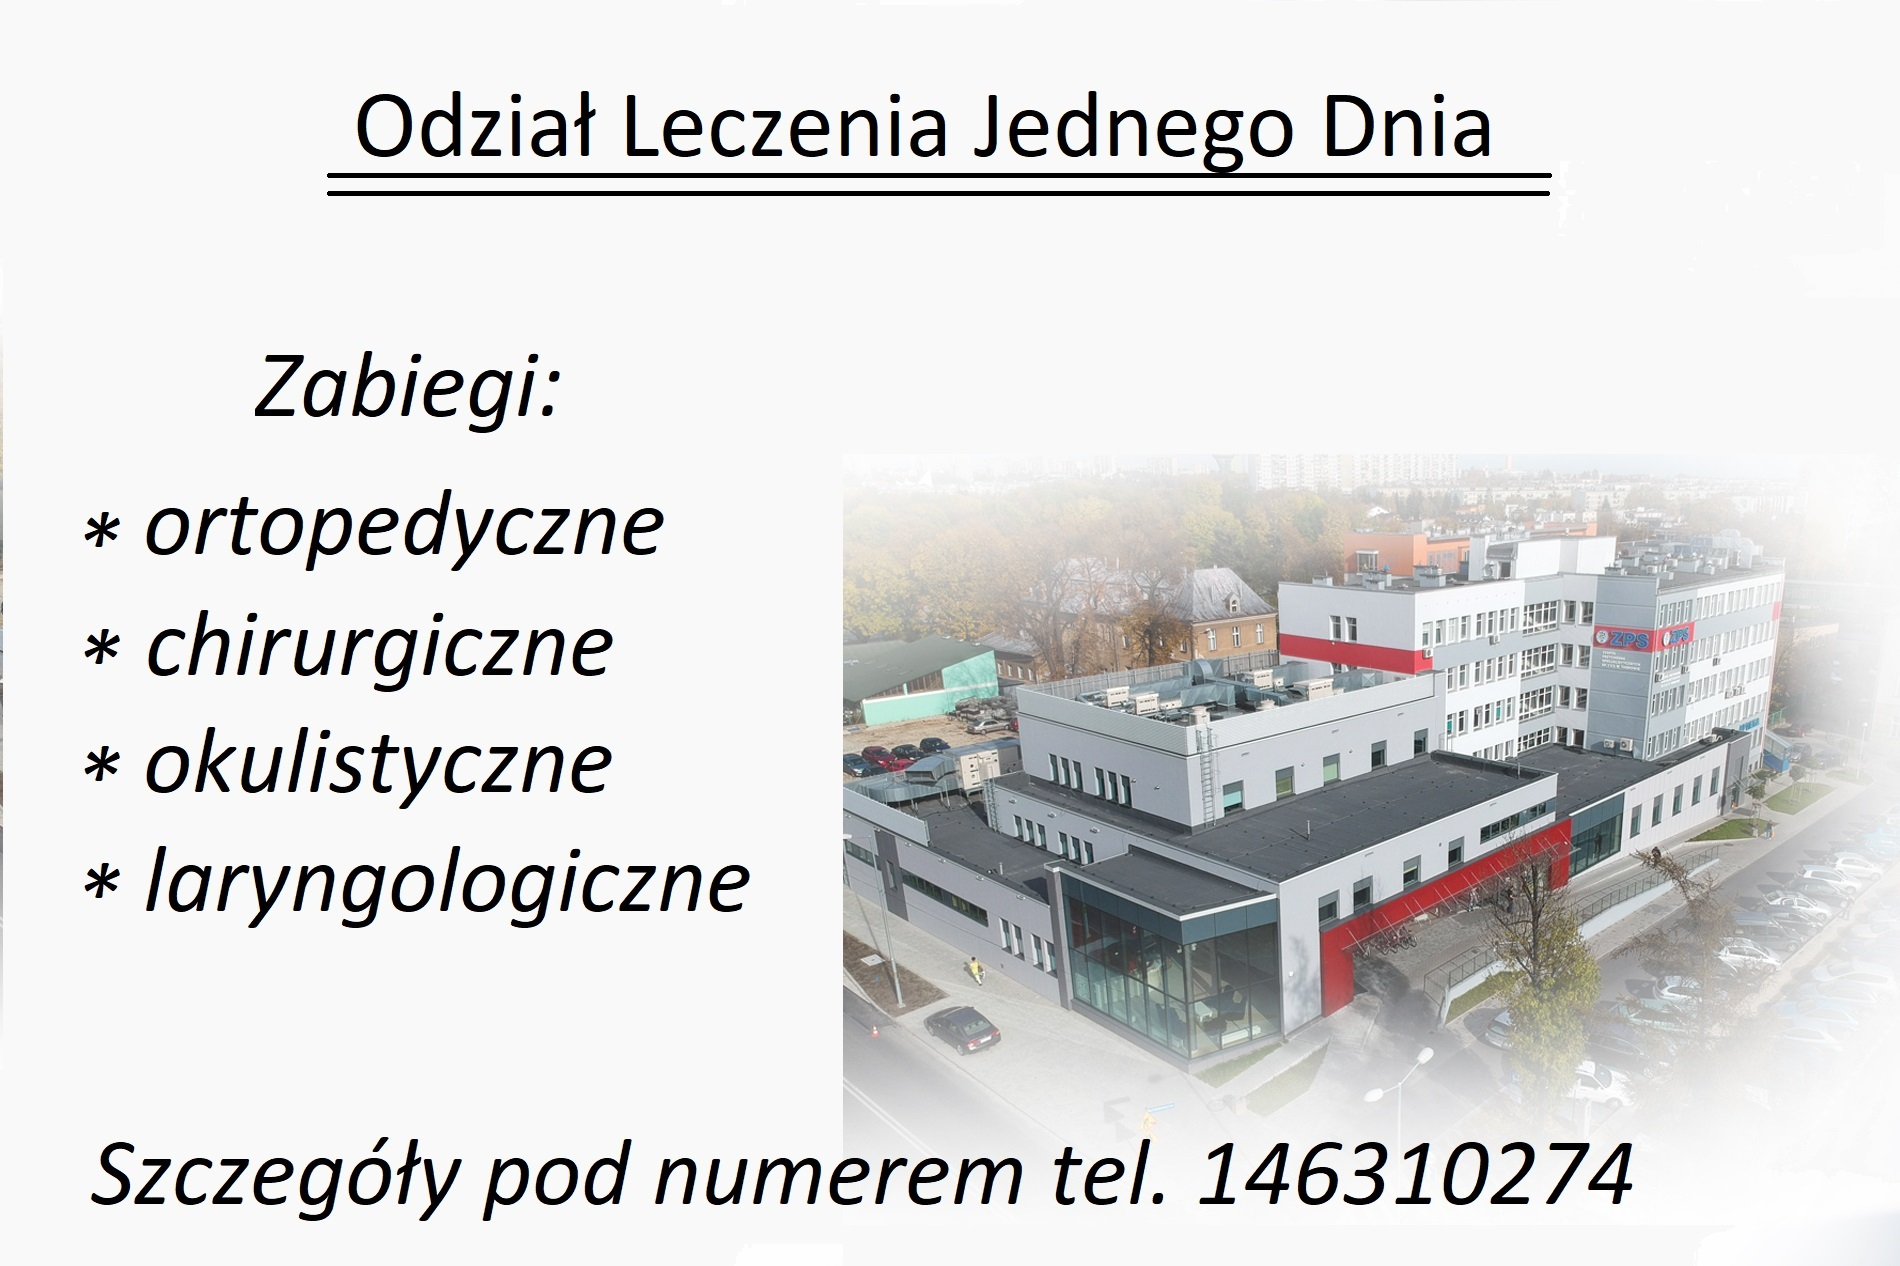 https://zps.tarnow.pl/wp-content/uploads/2018/11/slide1-1.jpg